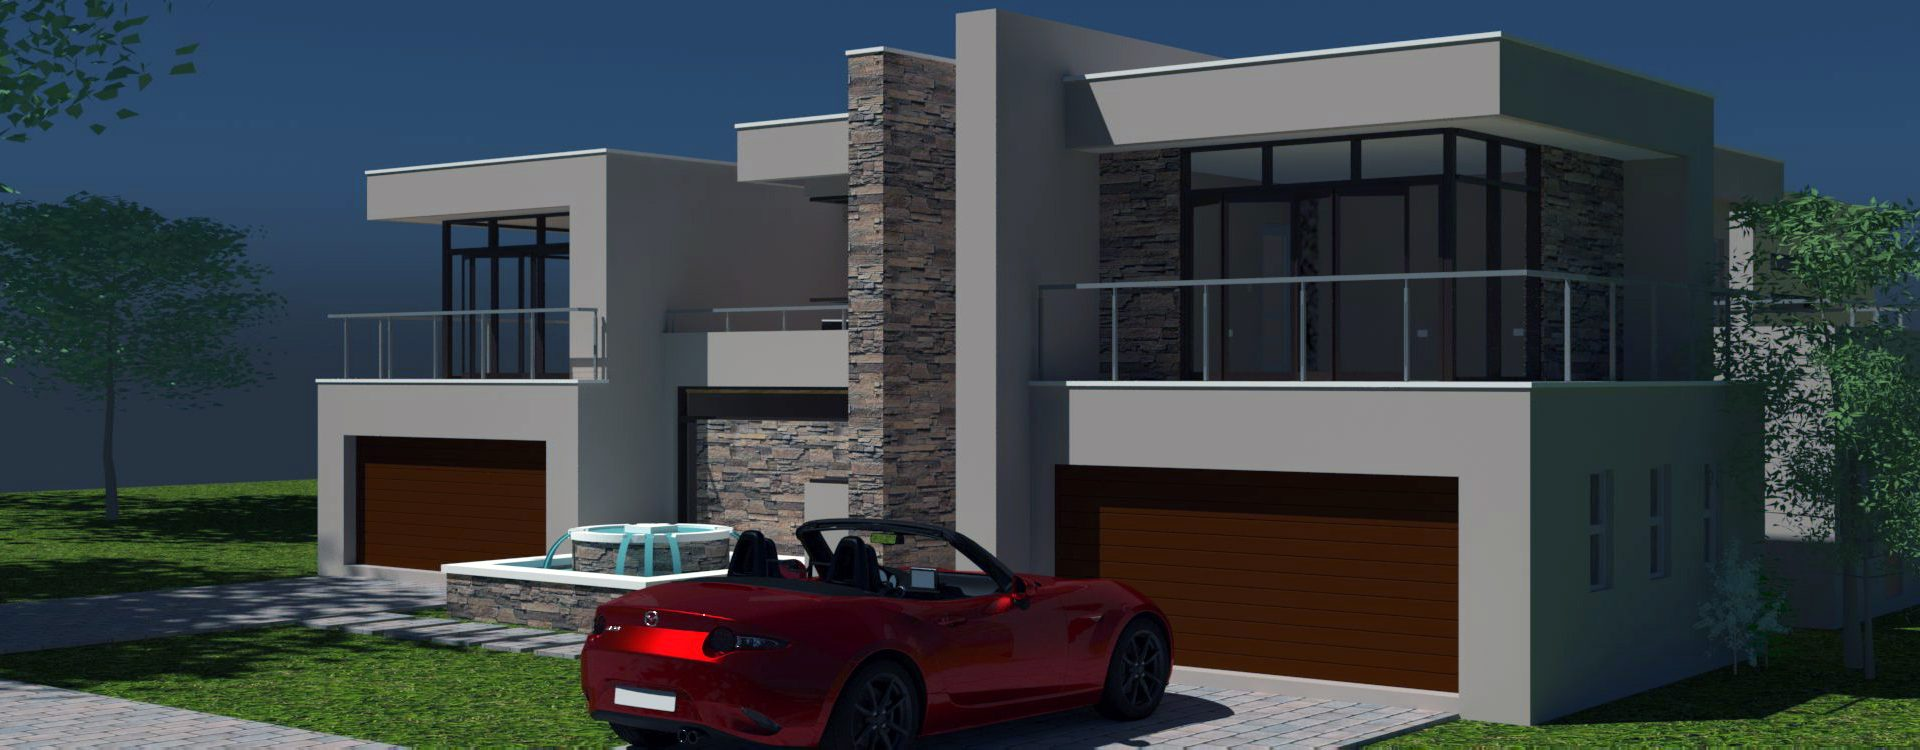 2 storey House Design, modern house plan, 4 car garage house design, contemporary double storey house plan, two storey house plan, Nethouseplans